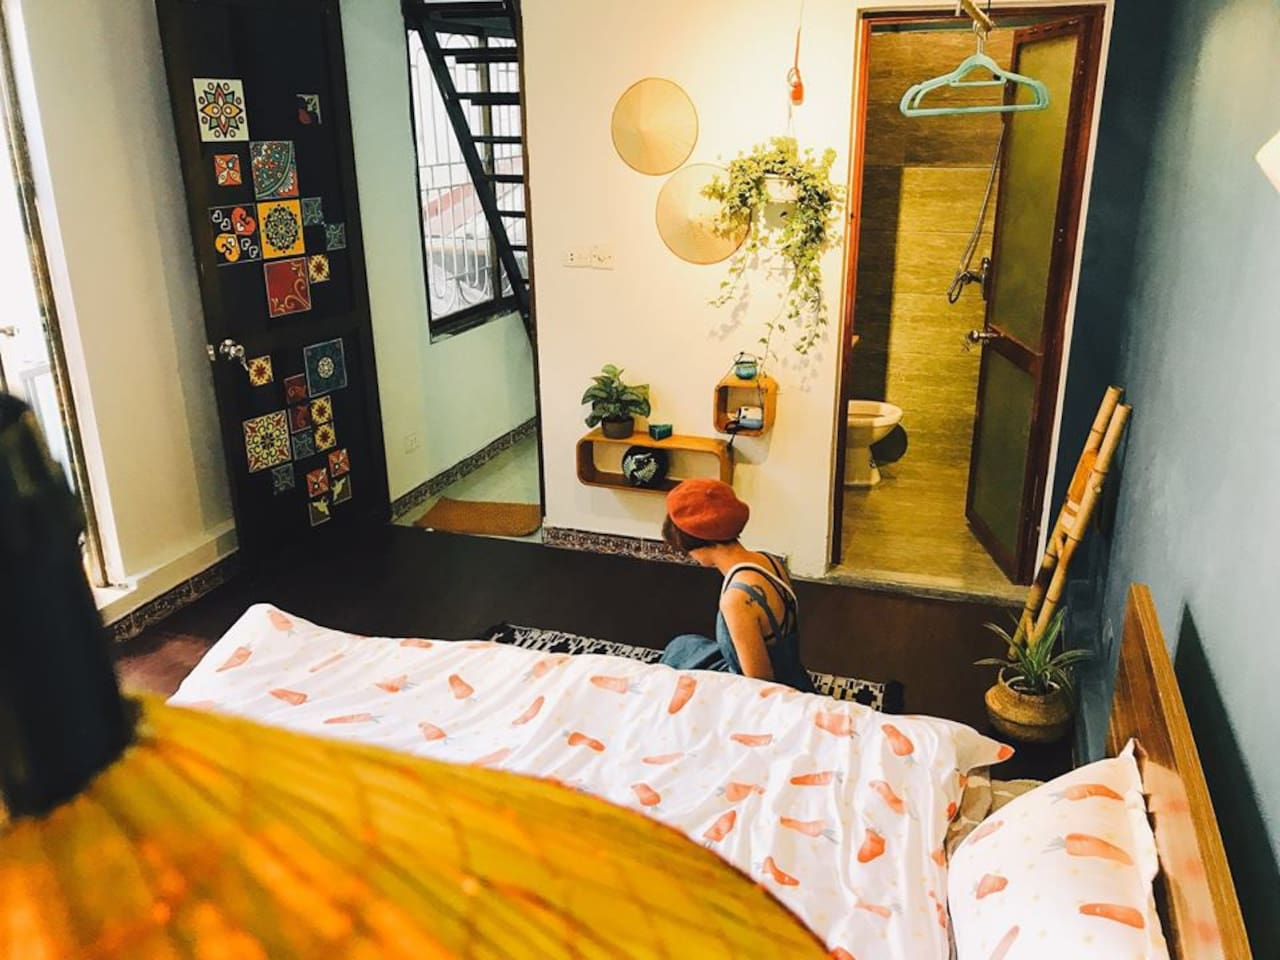 Lovely bedroom on 3rd Floor - 1 King Bed - 1 Sofa Bed - Private Bathroom